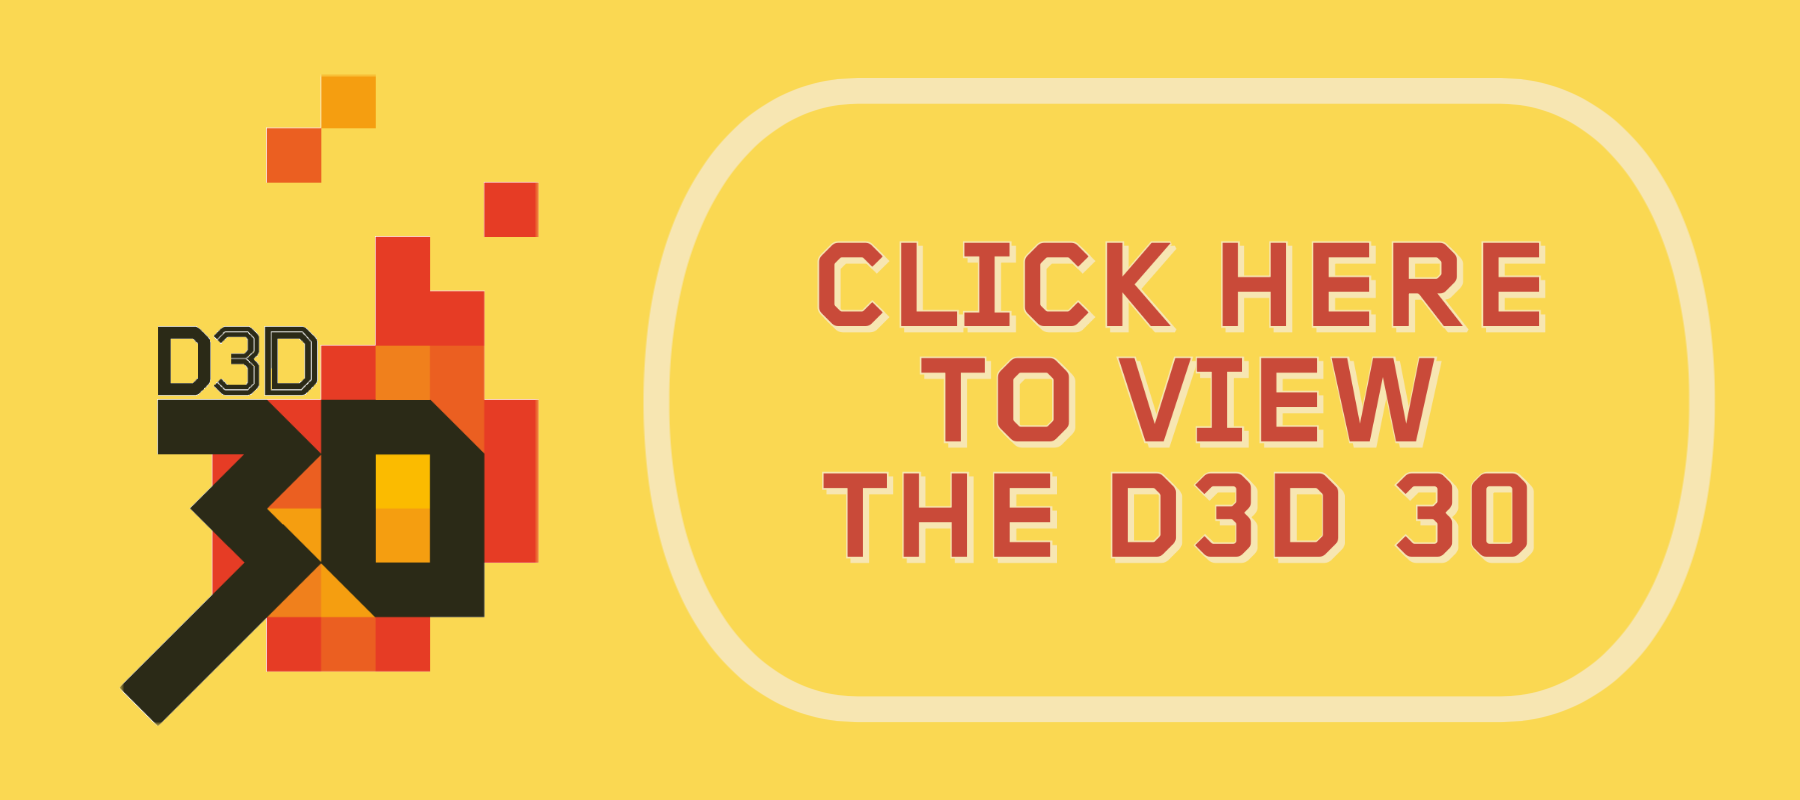 D3D 30 CLICK TO VIEW BANNER